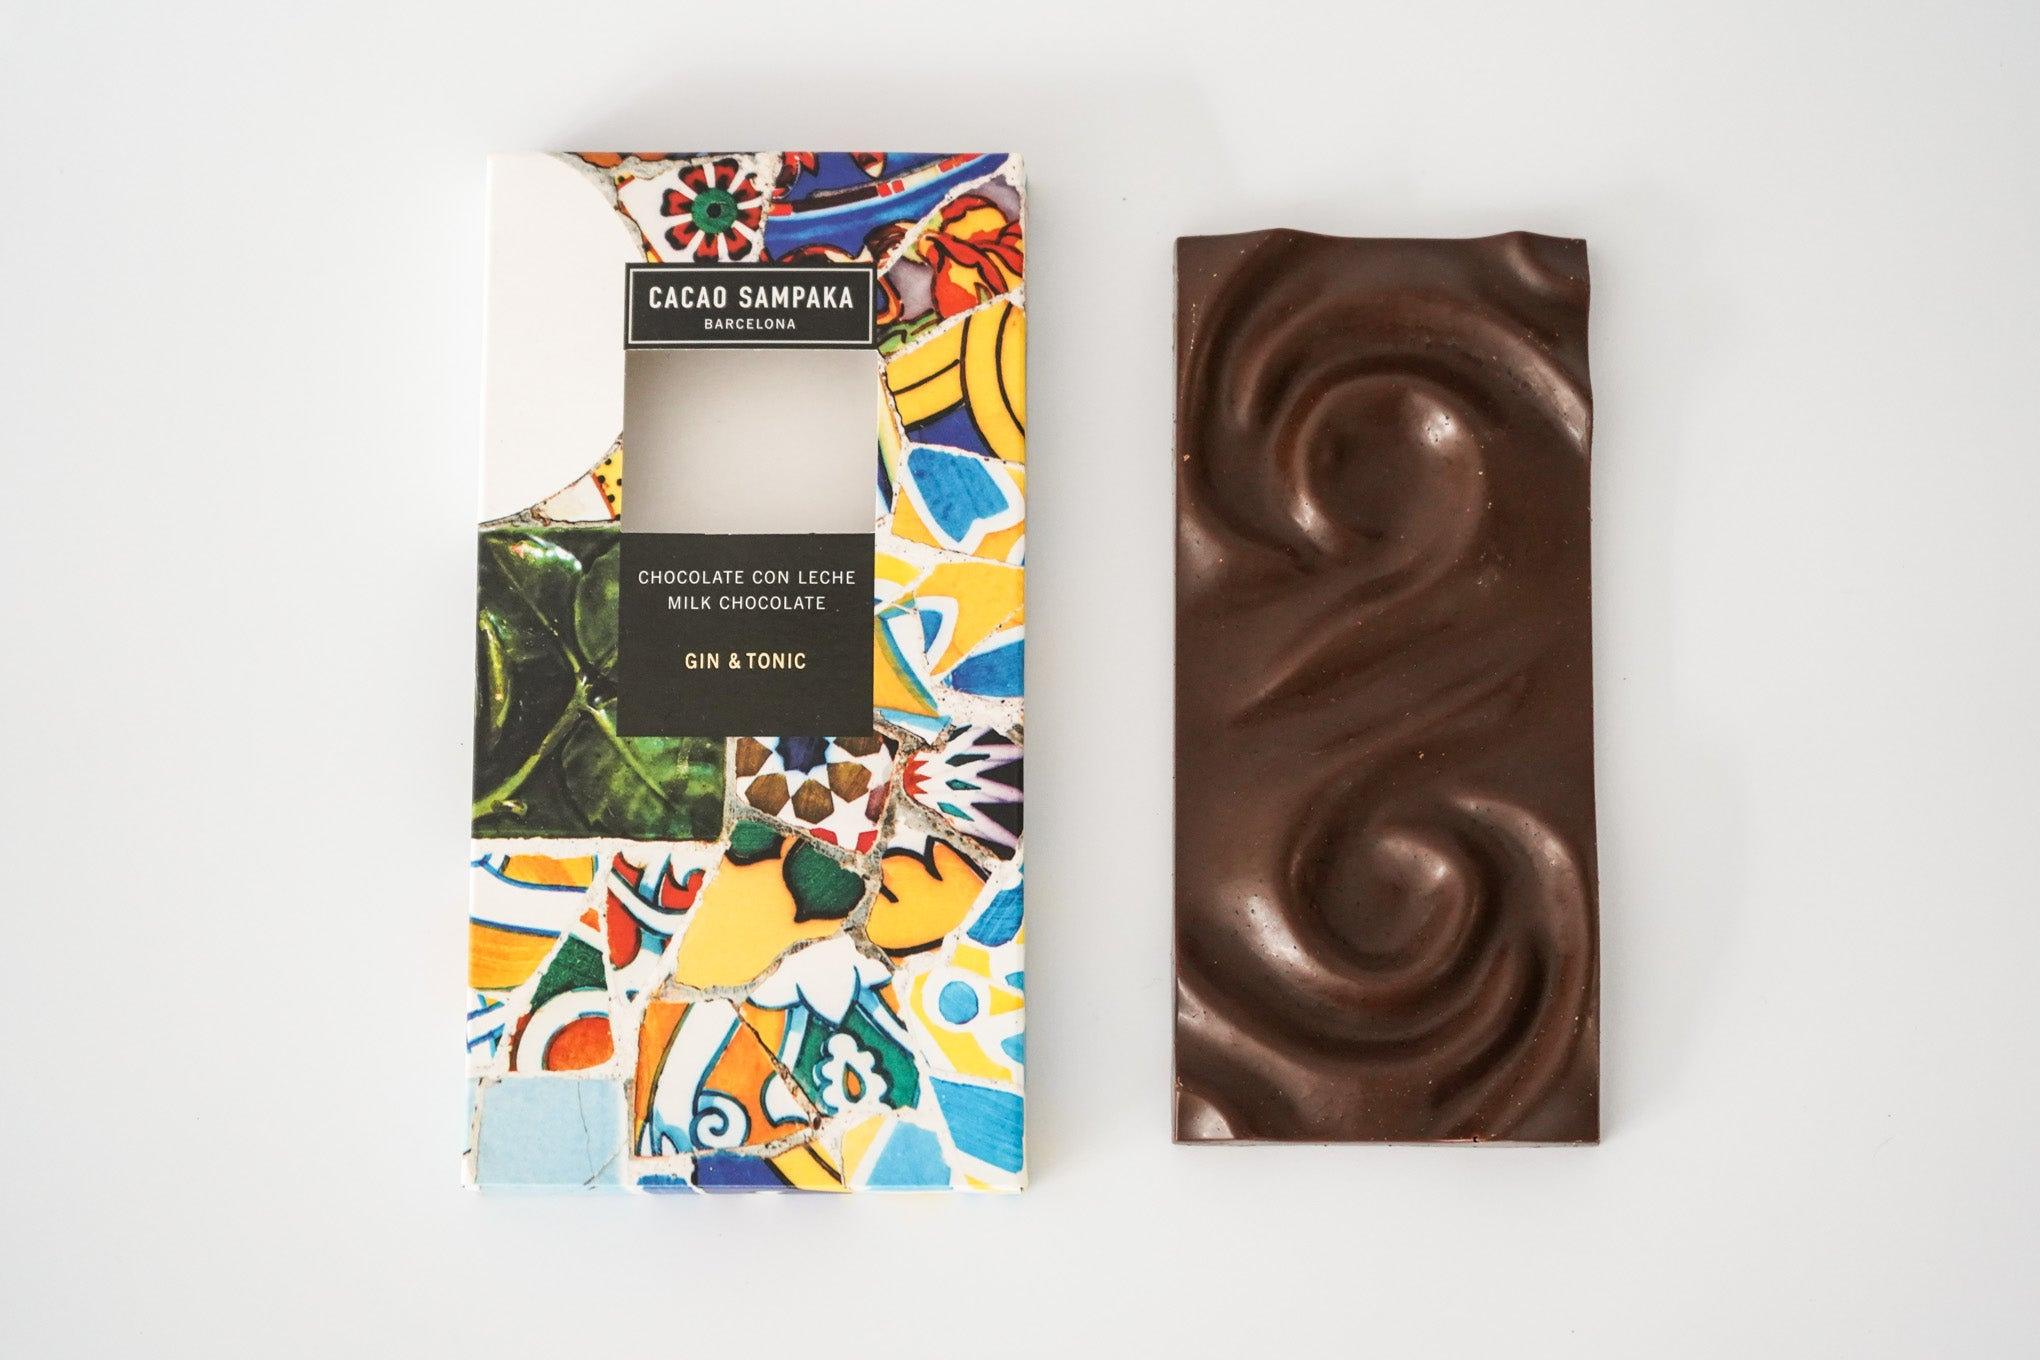 Gin & Tonic' Milk Chocolate